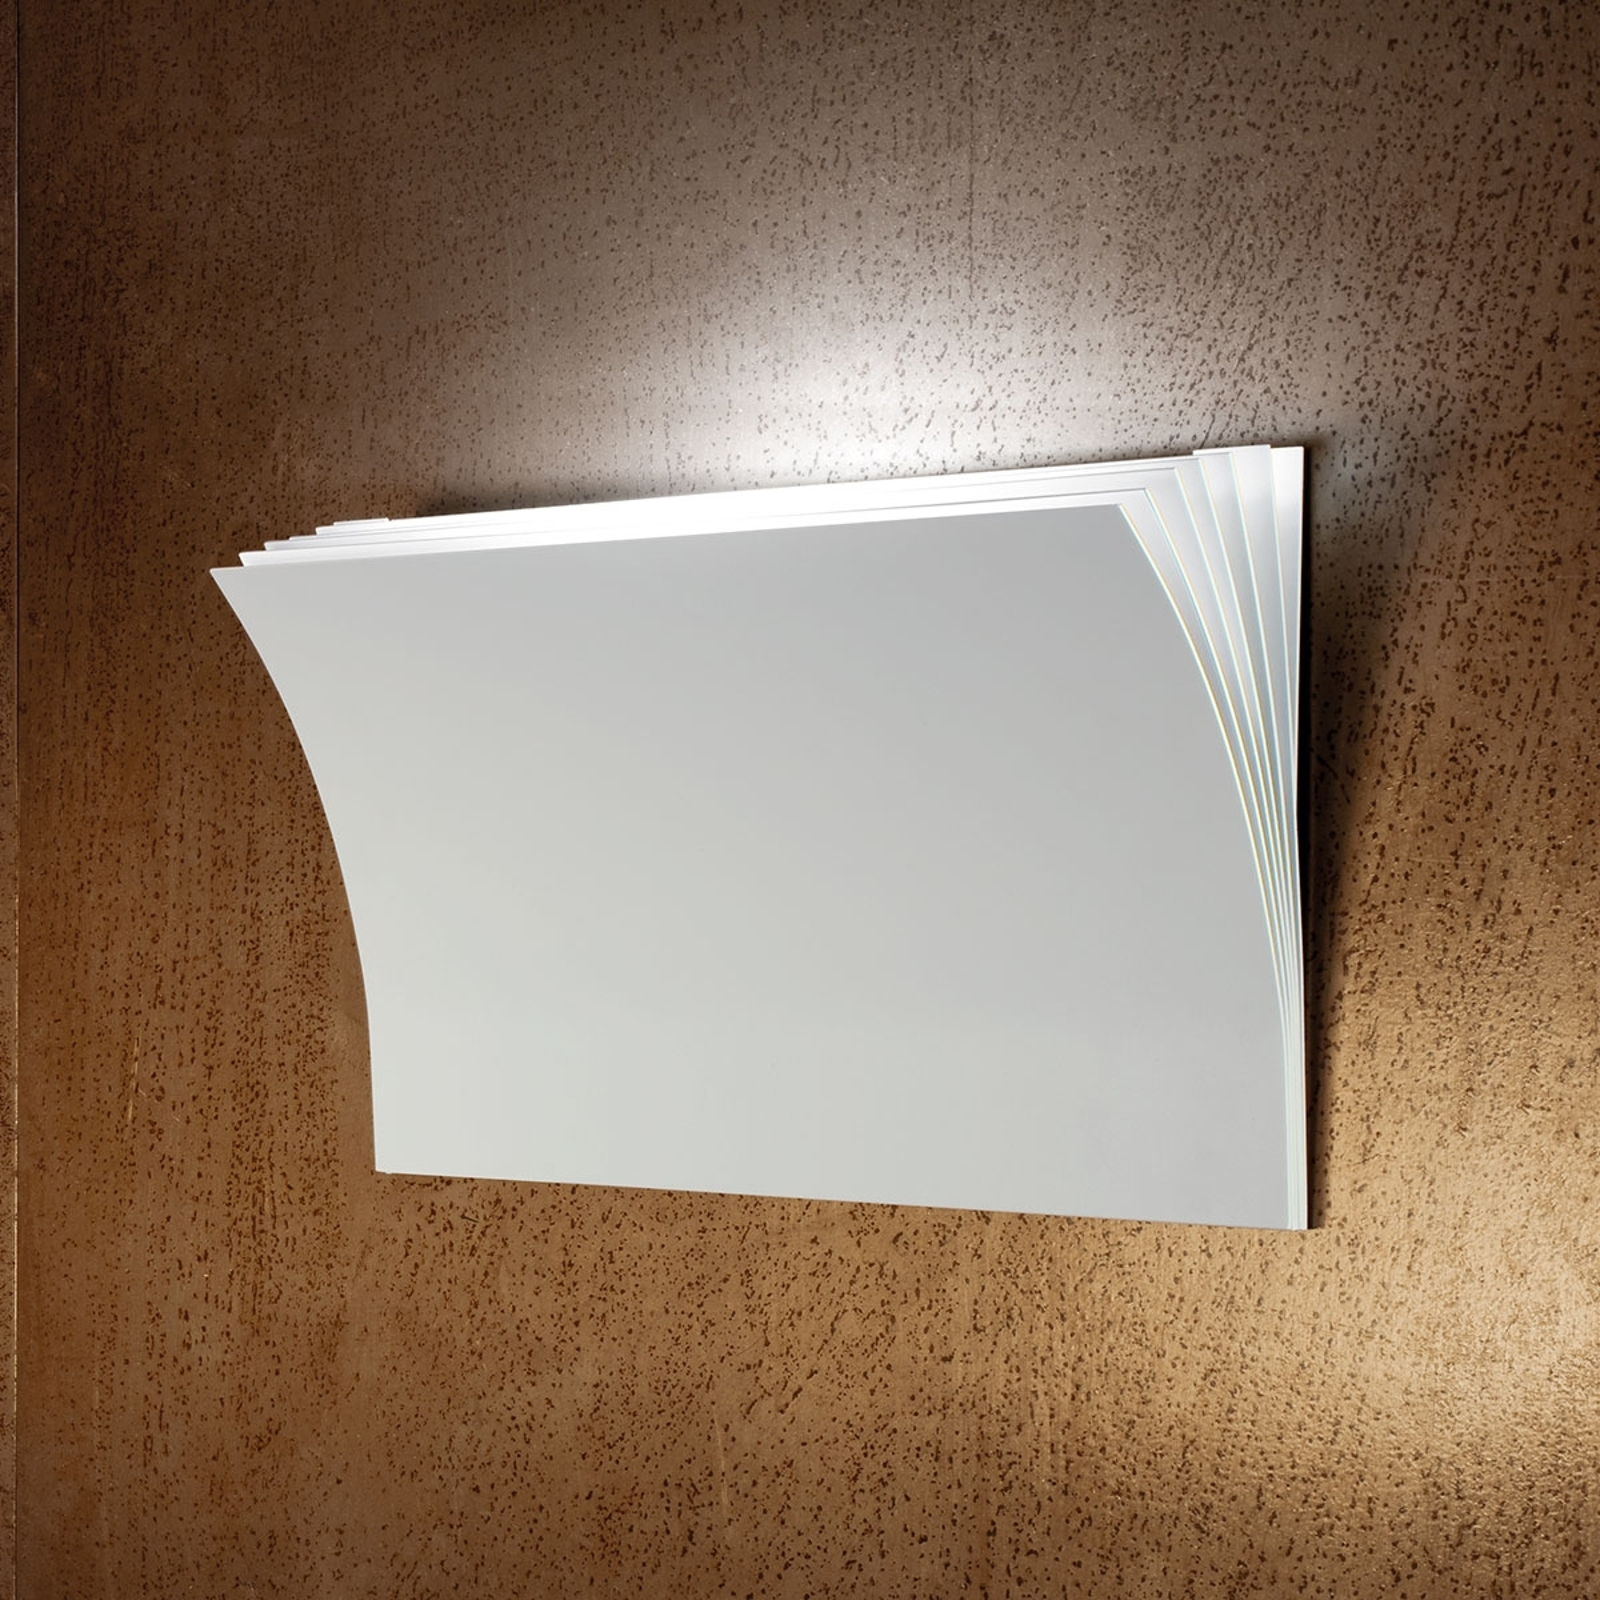 Wall light Polia with halogen lighting_1088022_1